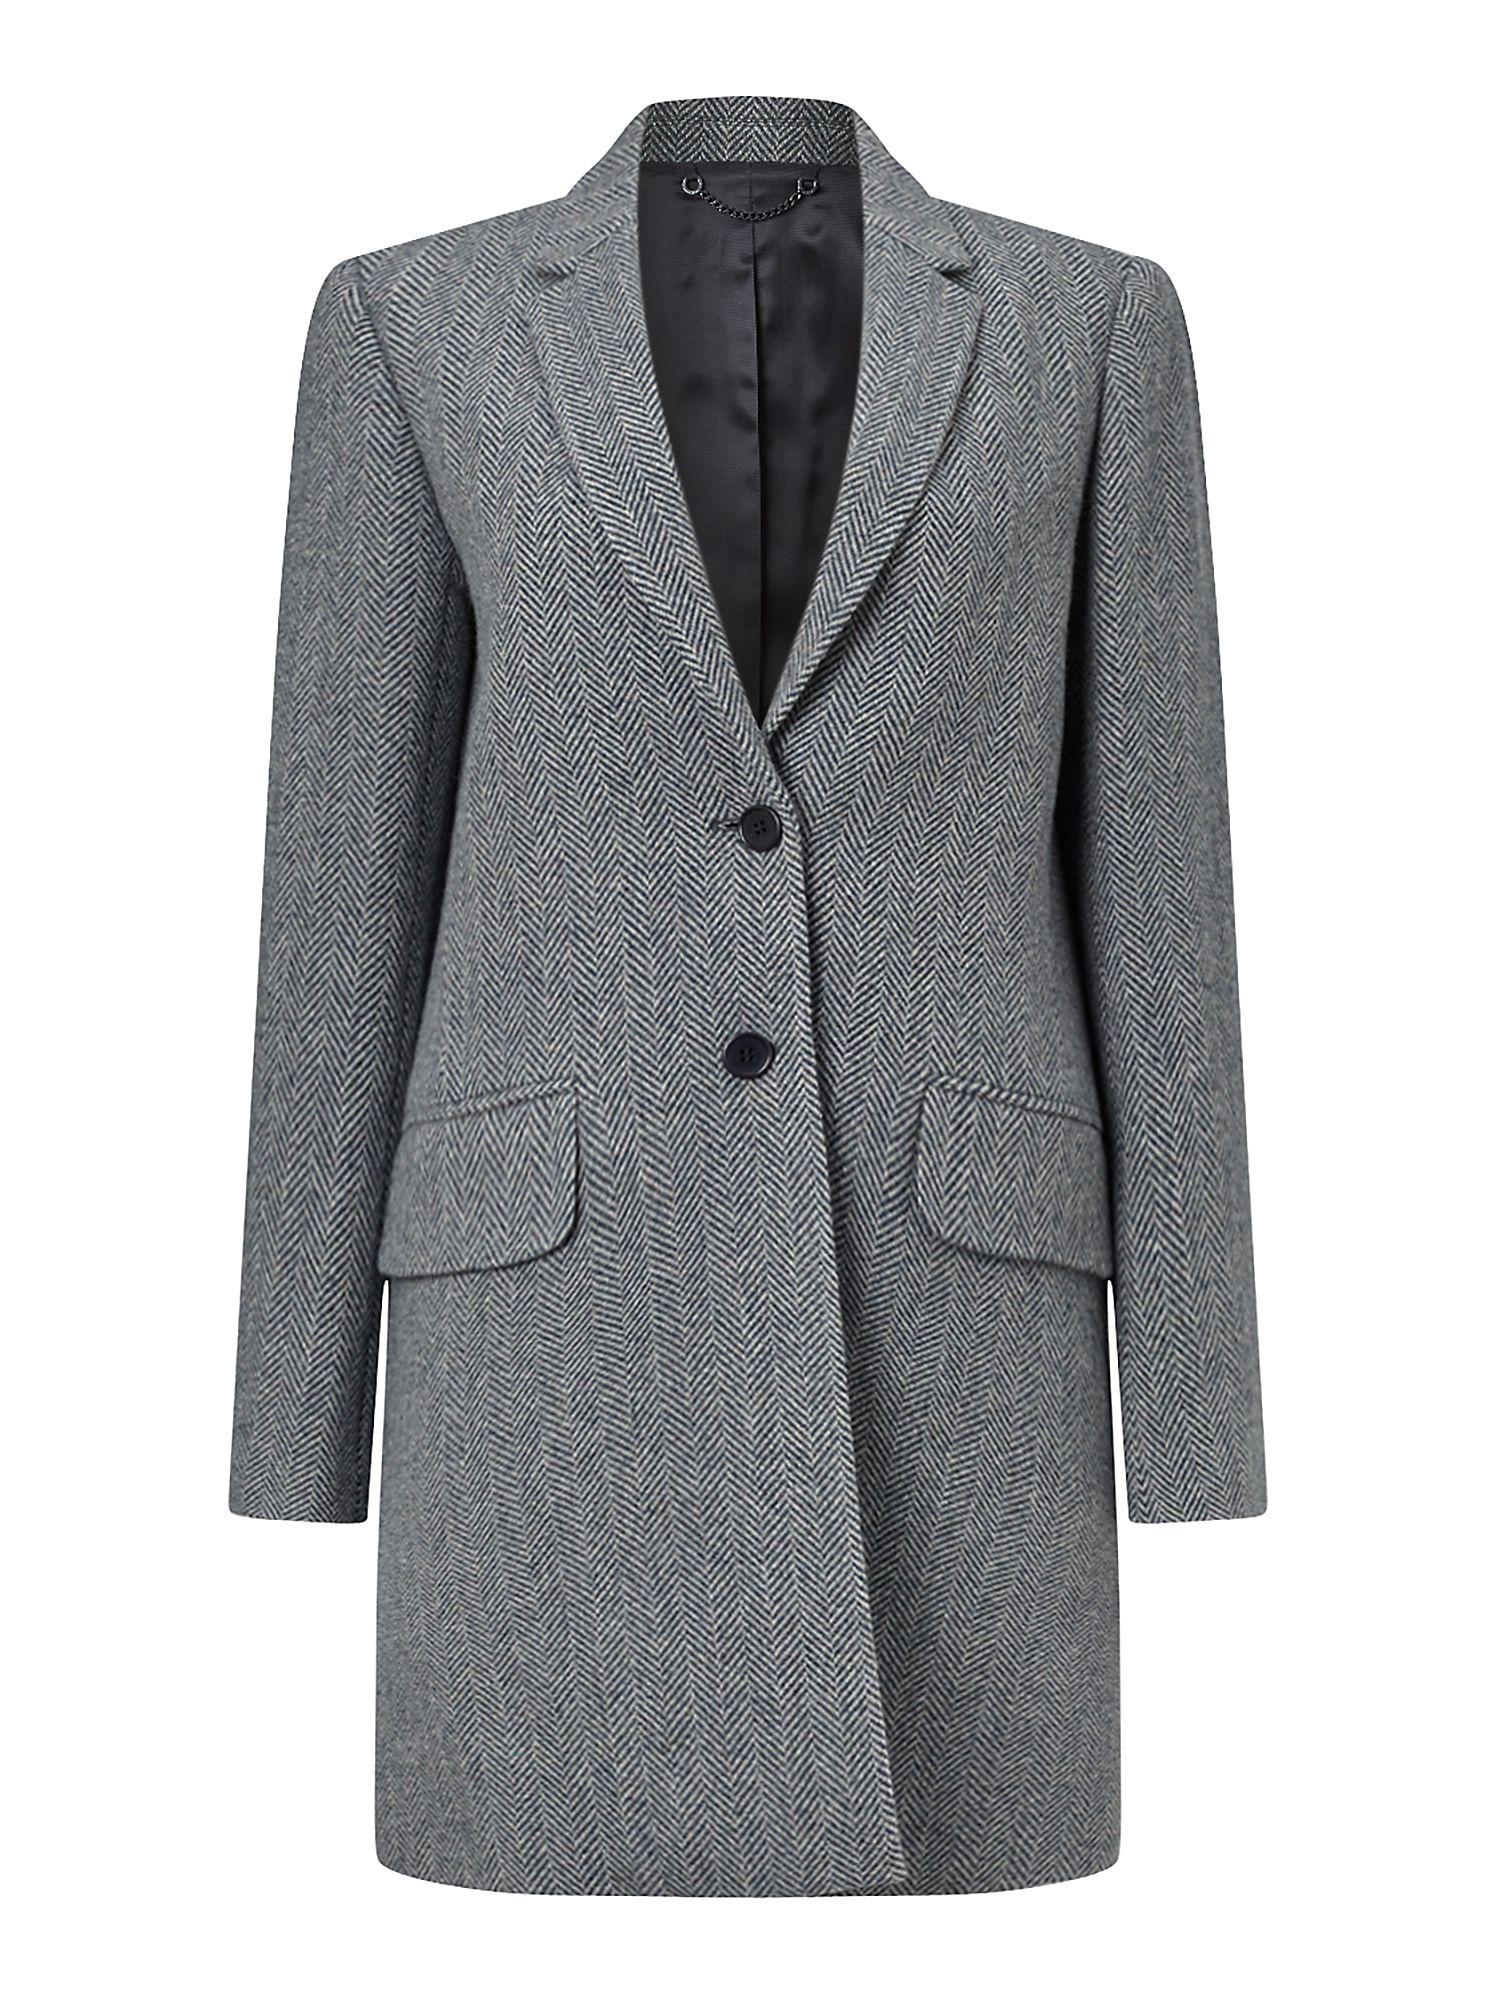 Jigsaw Herringbone Wool City Coat, Blue